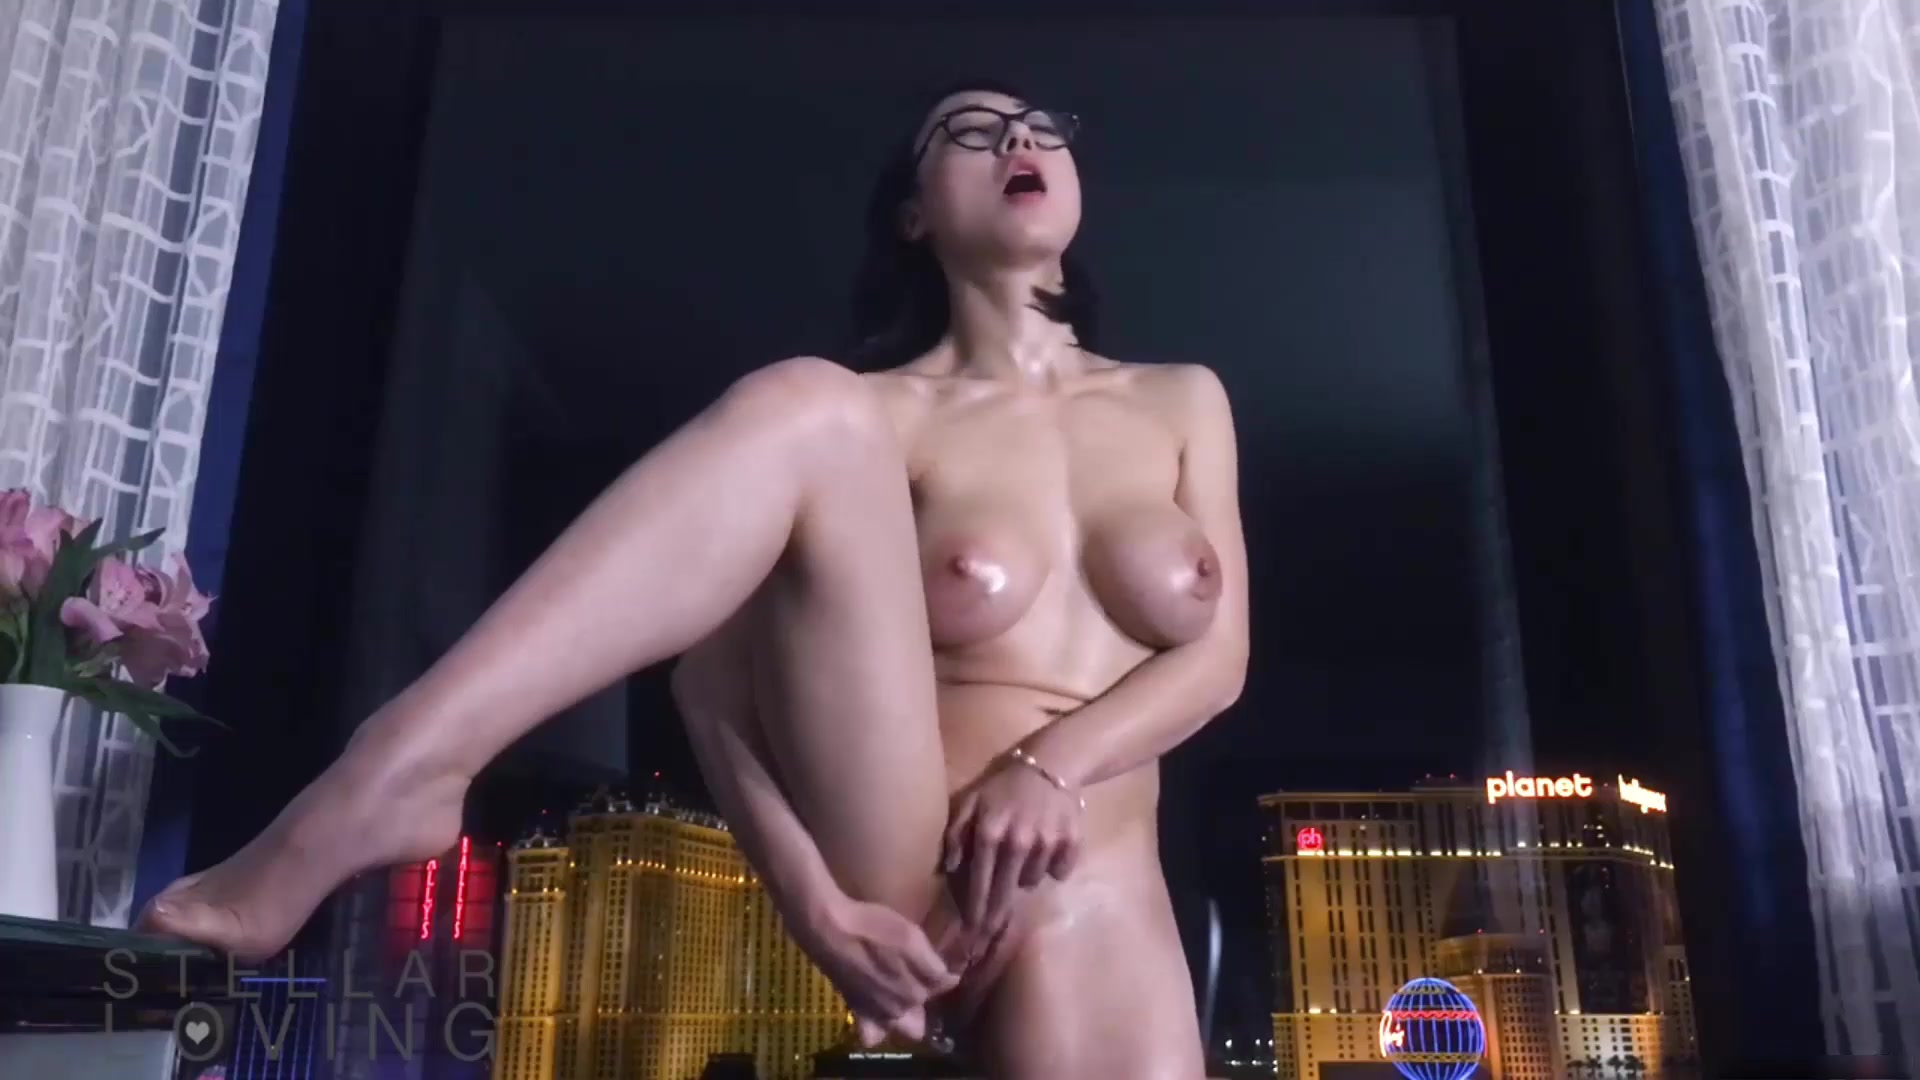 Asian MFC model StellarLoving masturbating on webcam